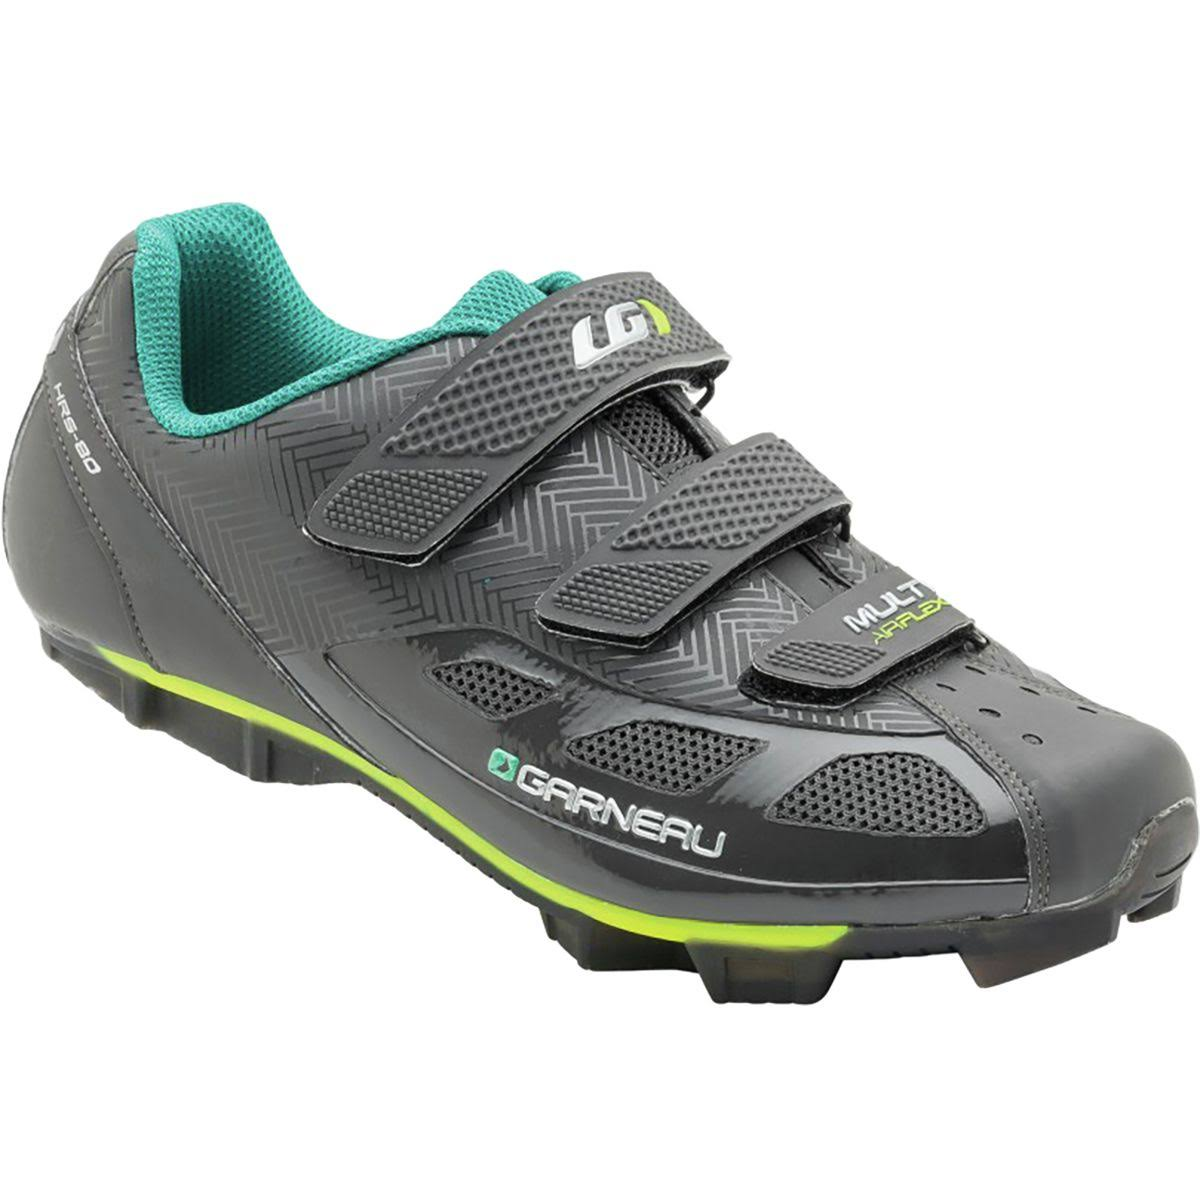 Louis Garneau Women's Multi Air Flex Bike Shoes - Asphalt, 9.5 US